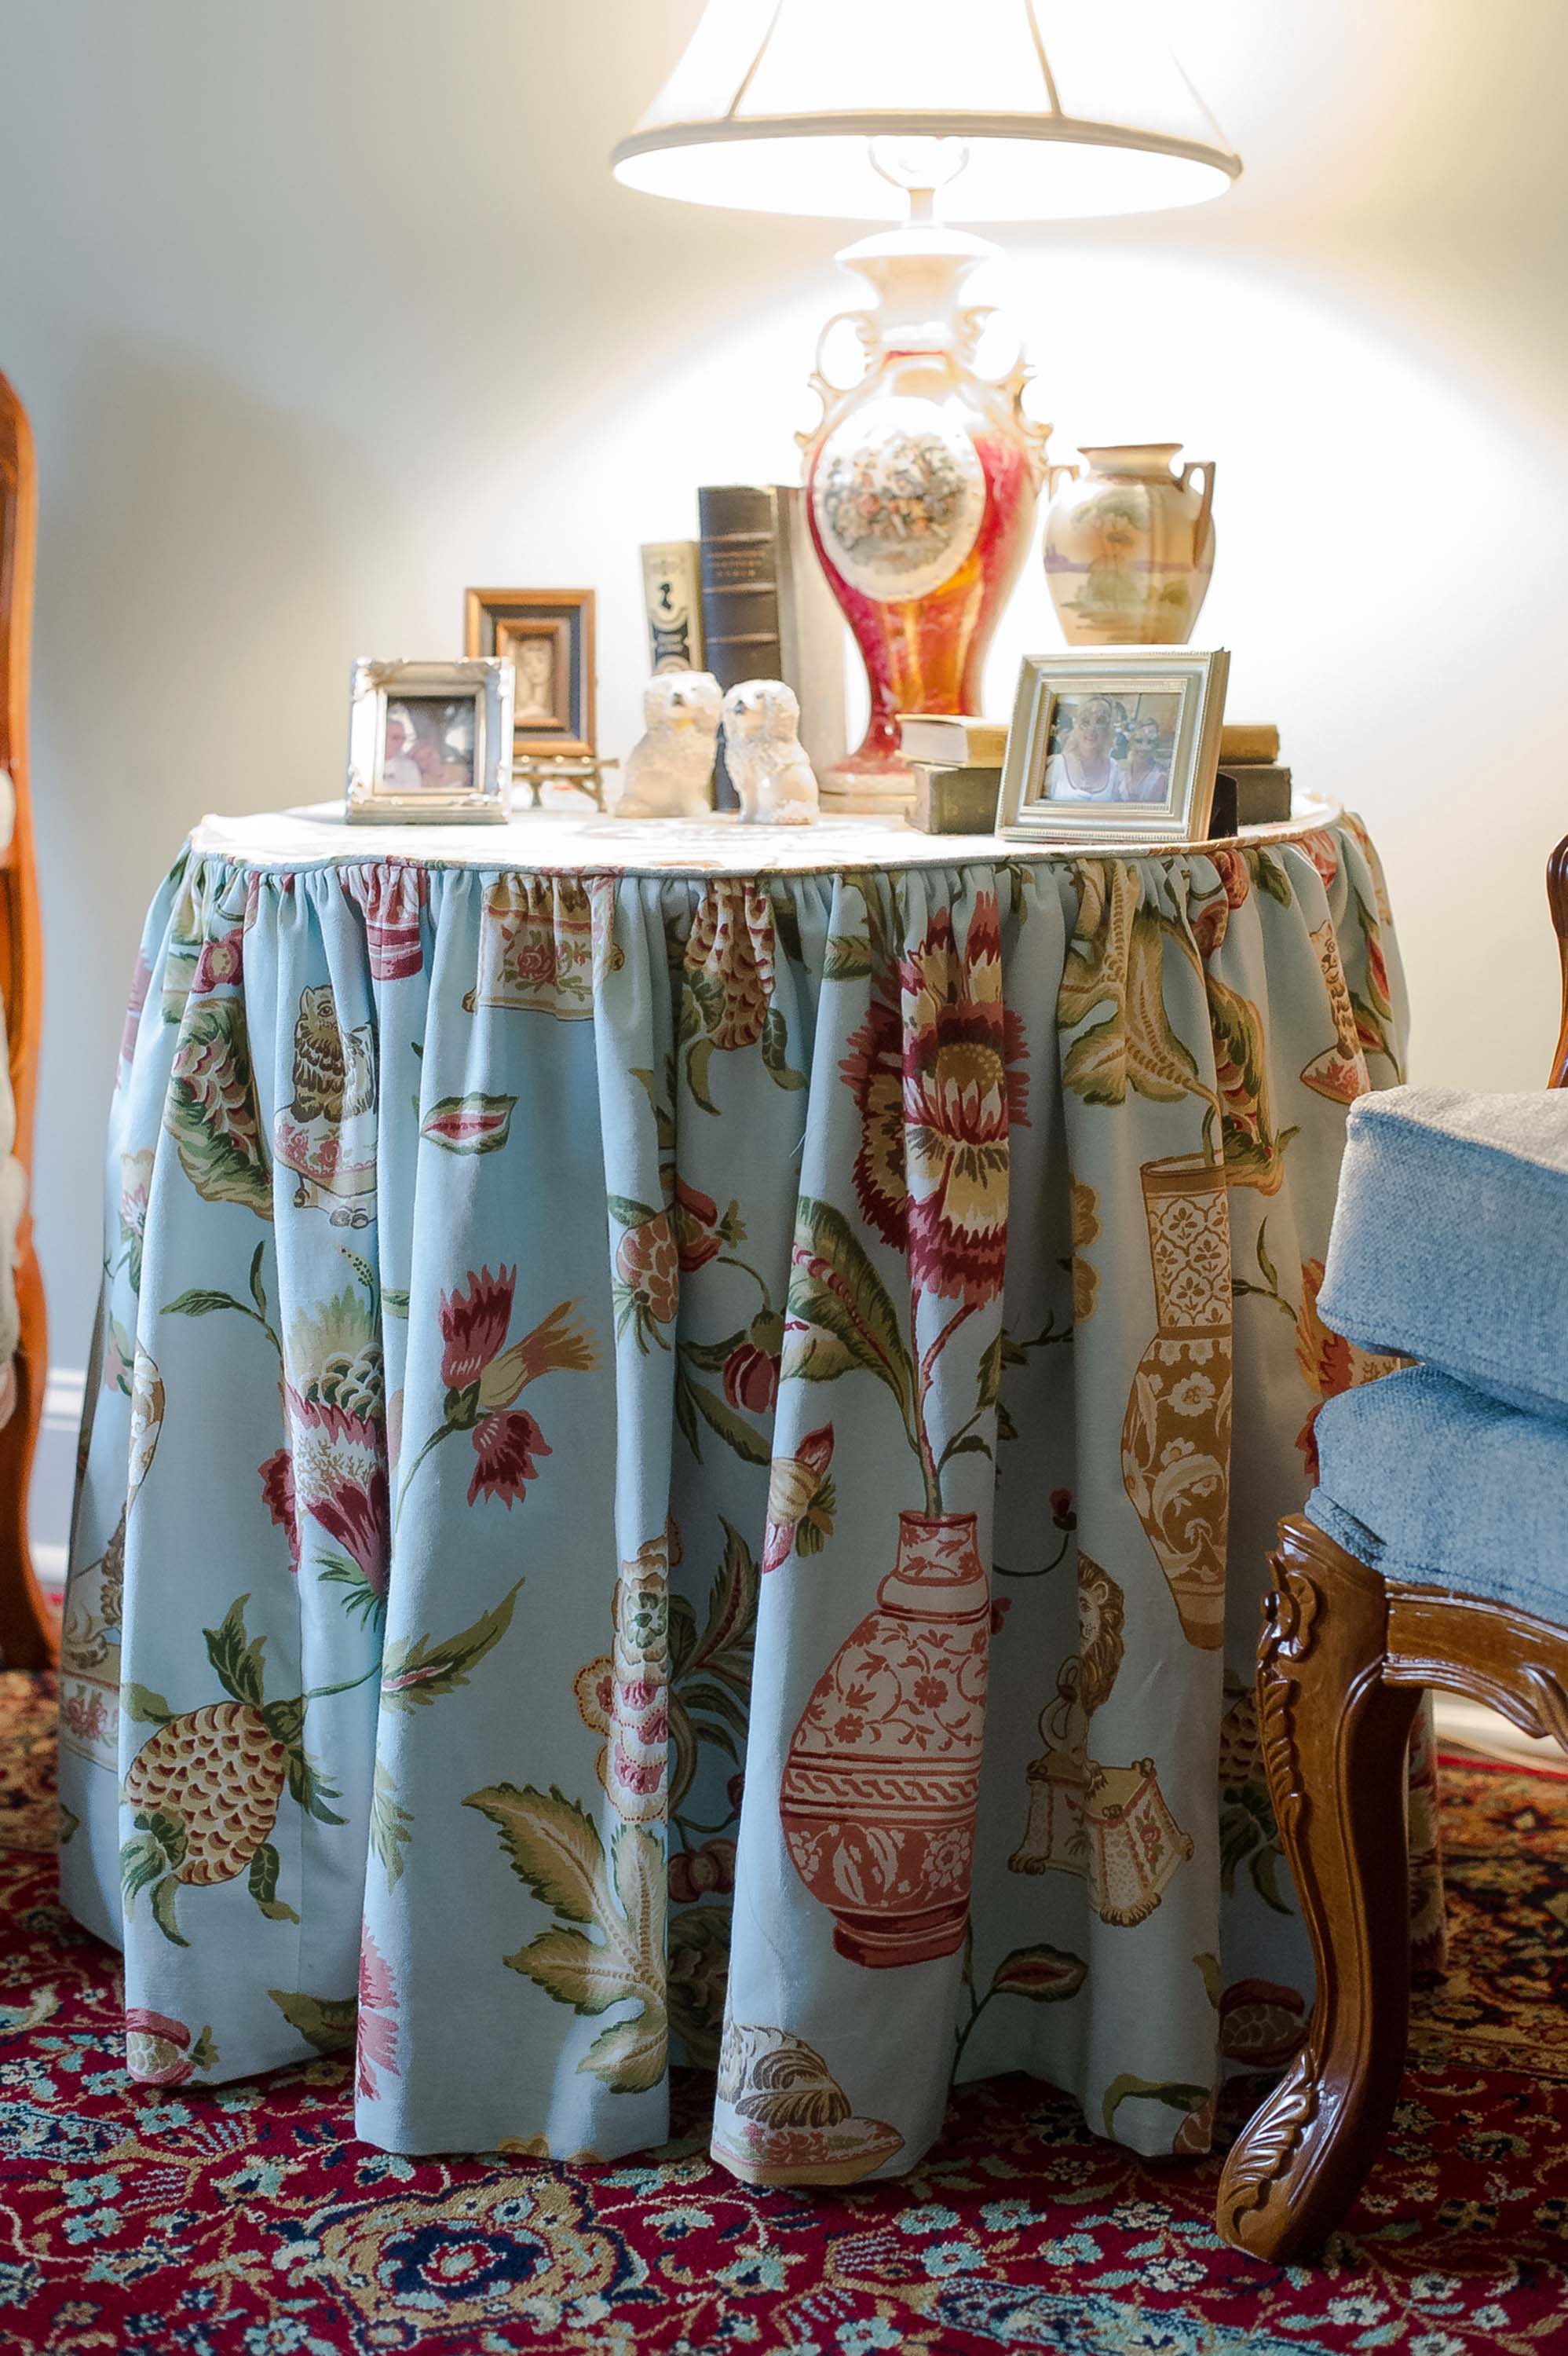 Custom Table Skirt with Accessories and Lamps